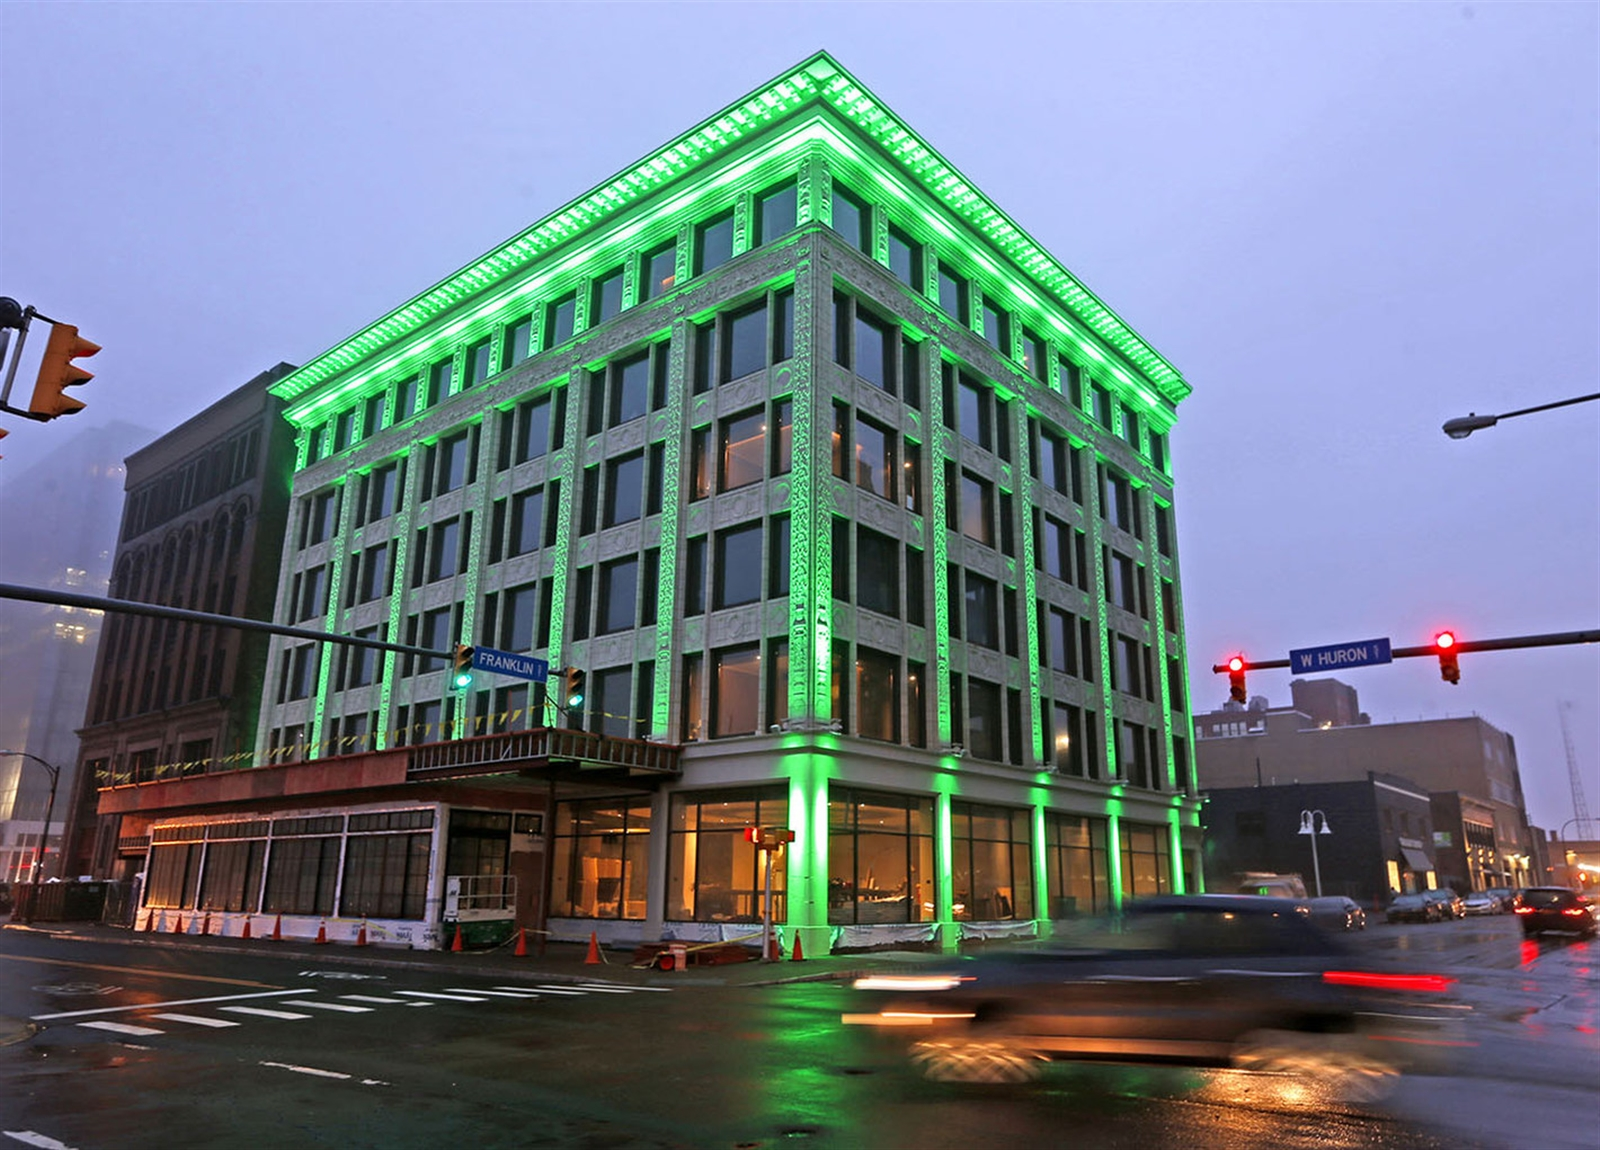 The new exterior lighting changing from white to green and other colors. The office building was constructed in 1912-1913 and added to the National Register of Historic Places in 2008.